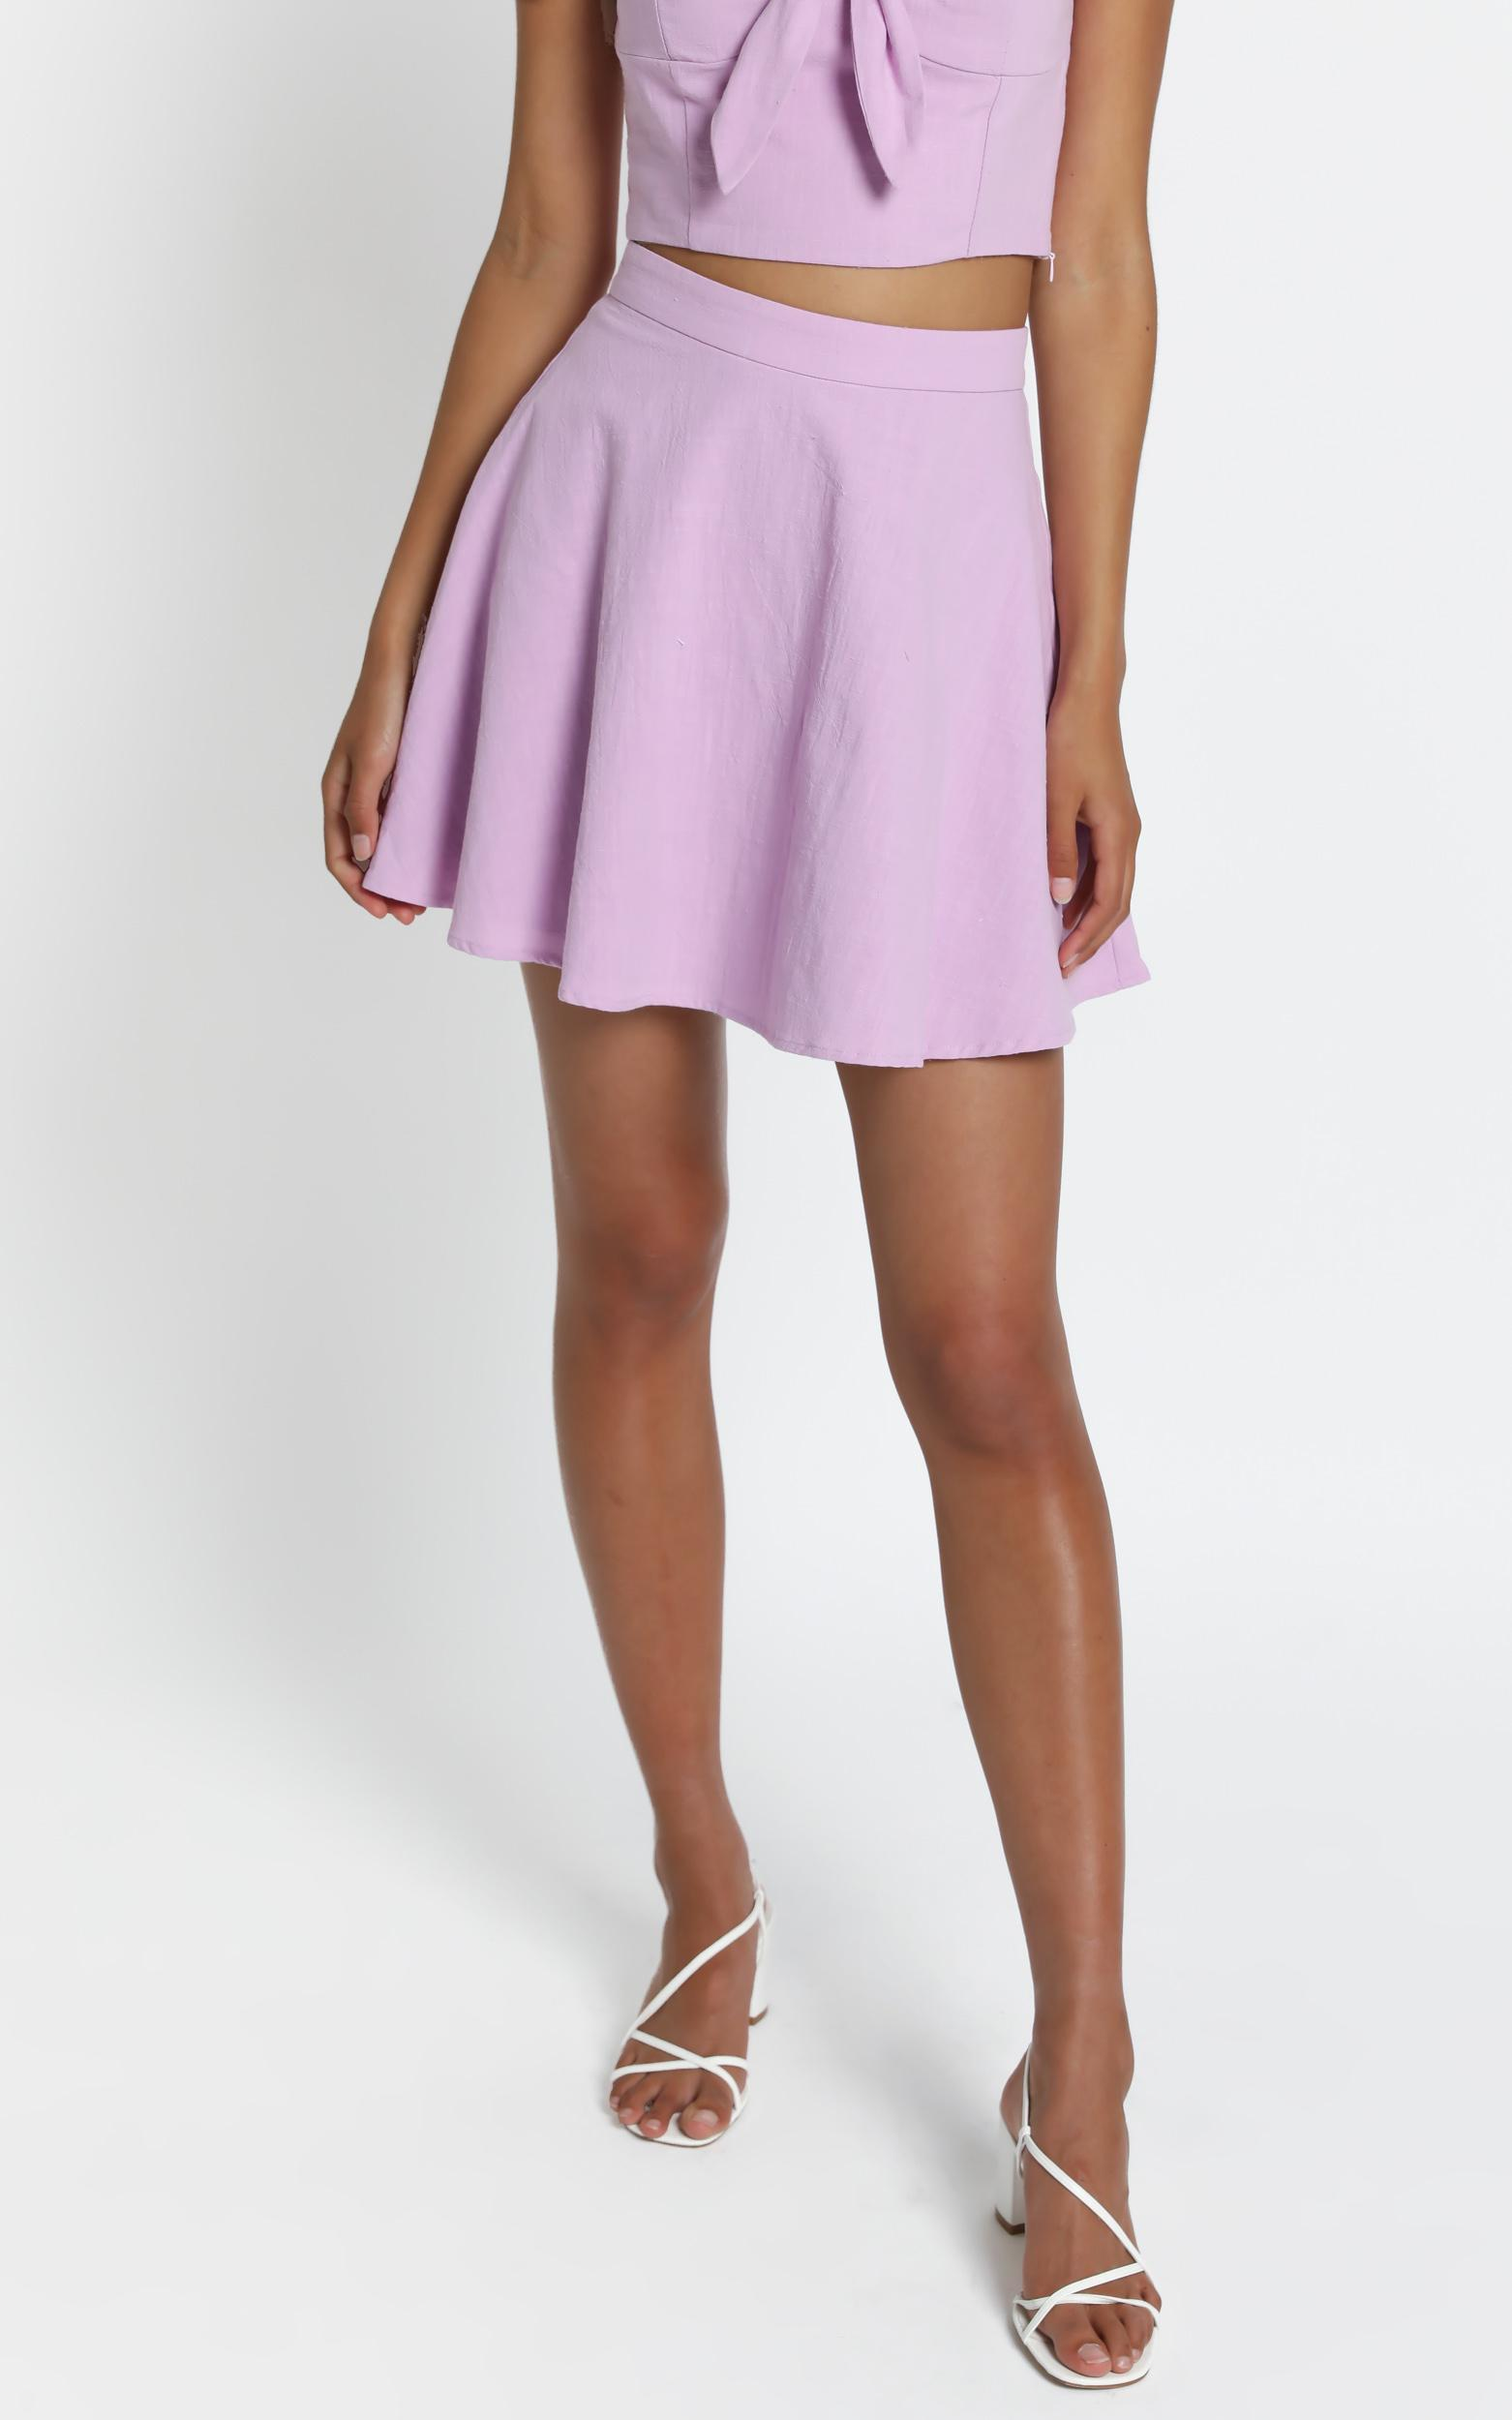 Pei Skirt in Lilac - 6 (XS), Purple, hi-res image number null